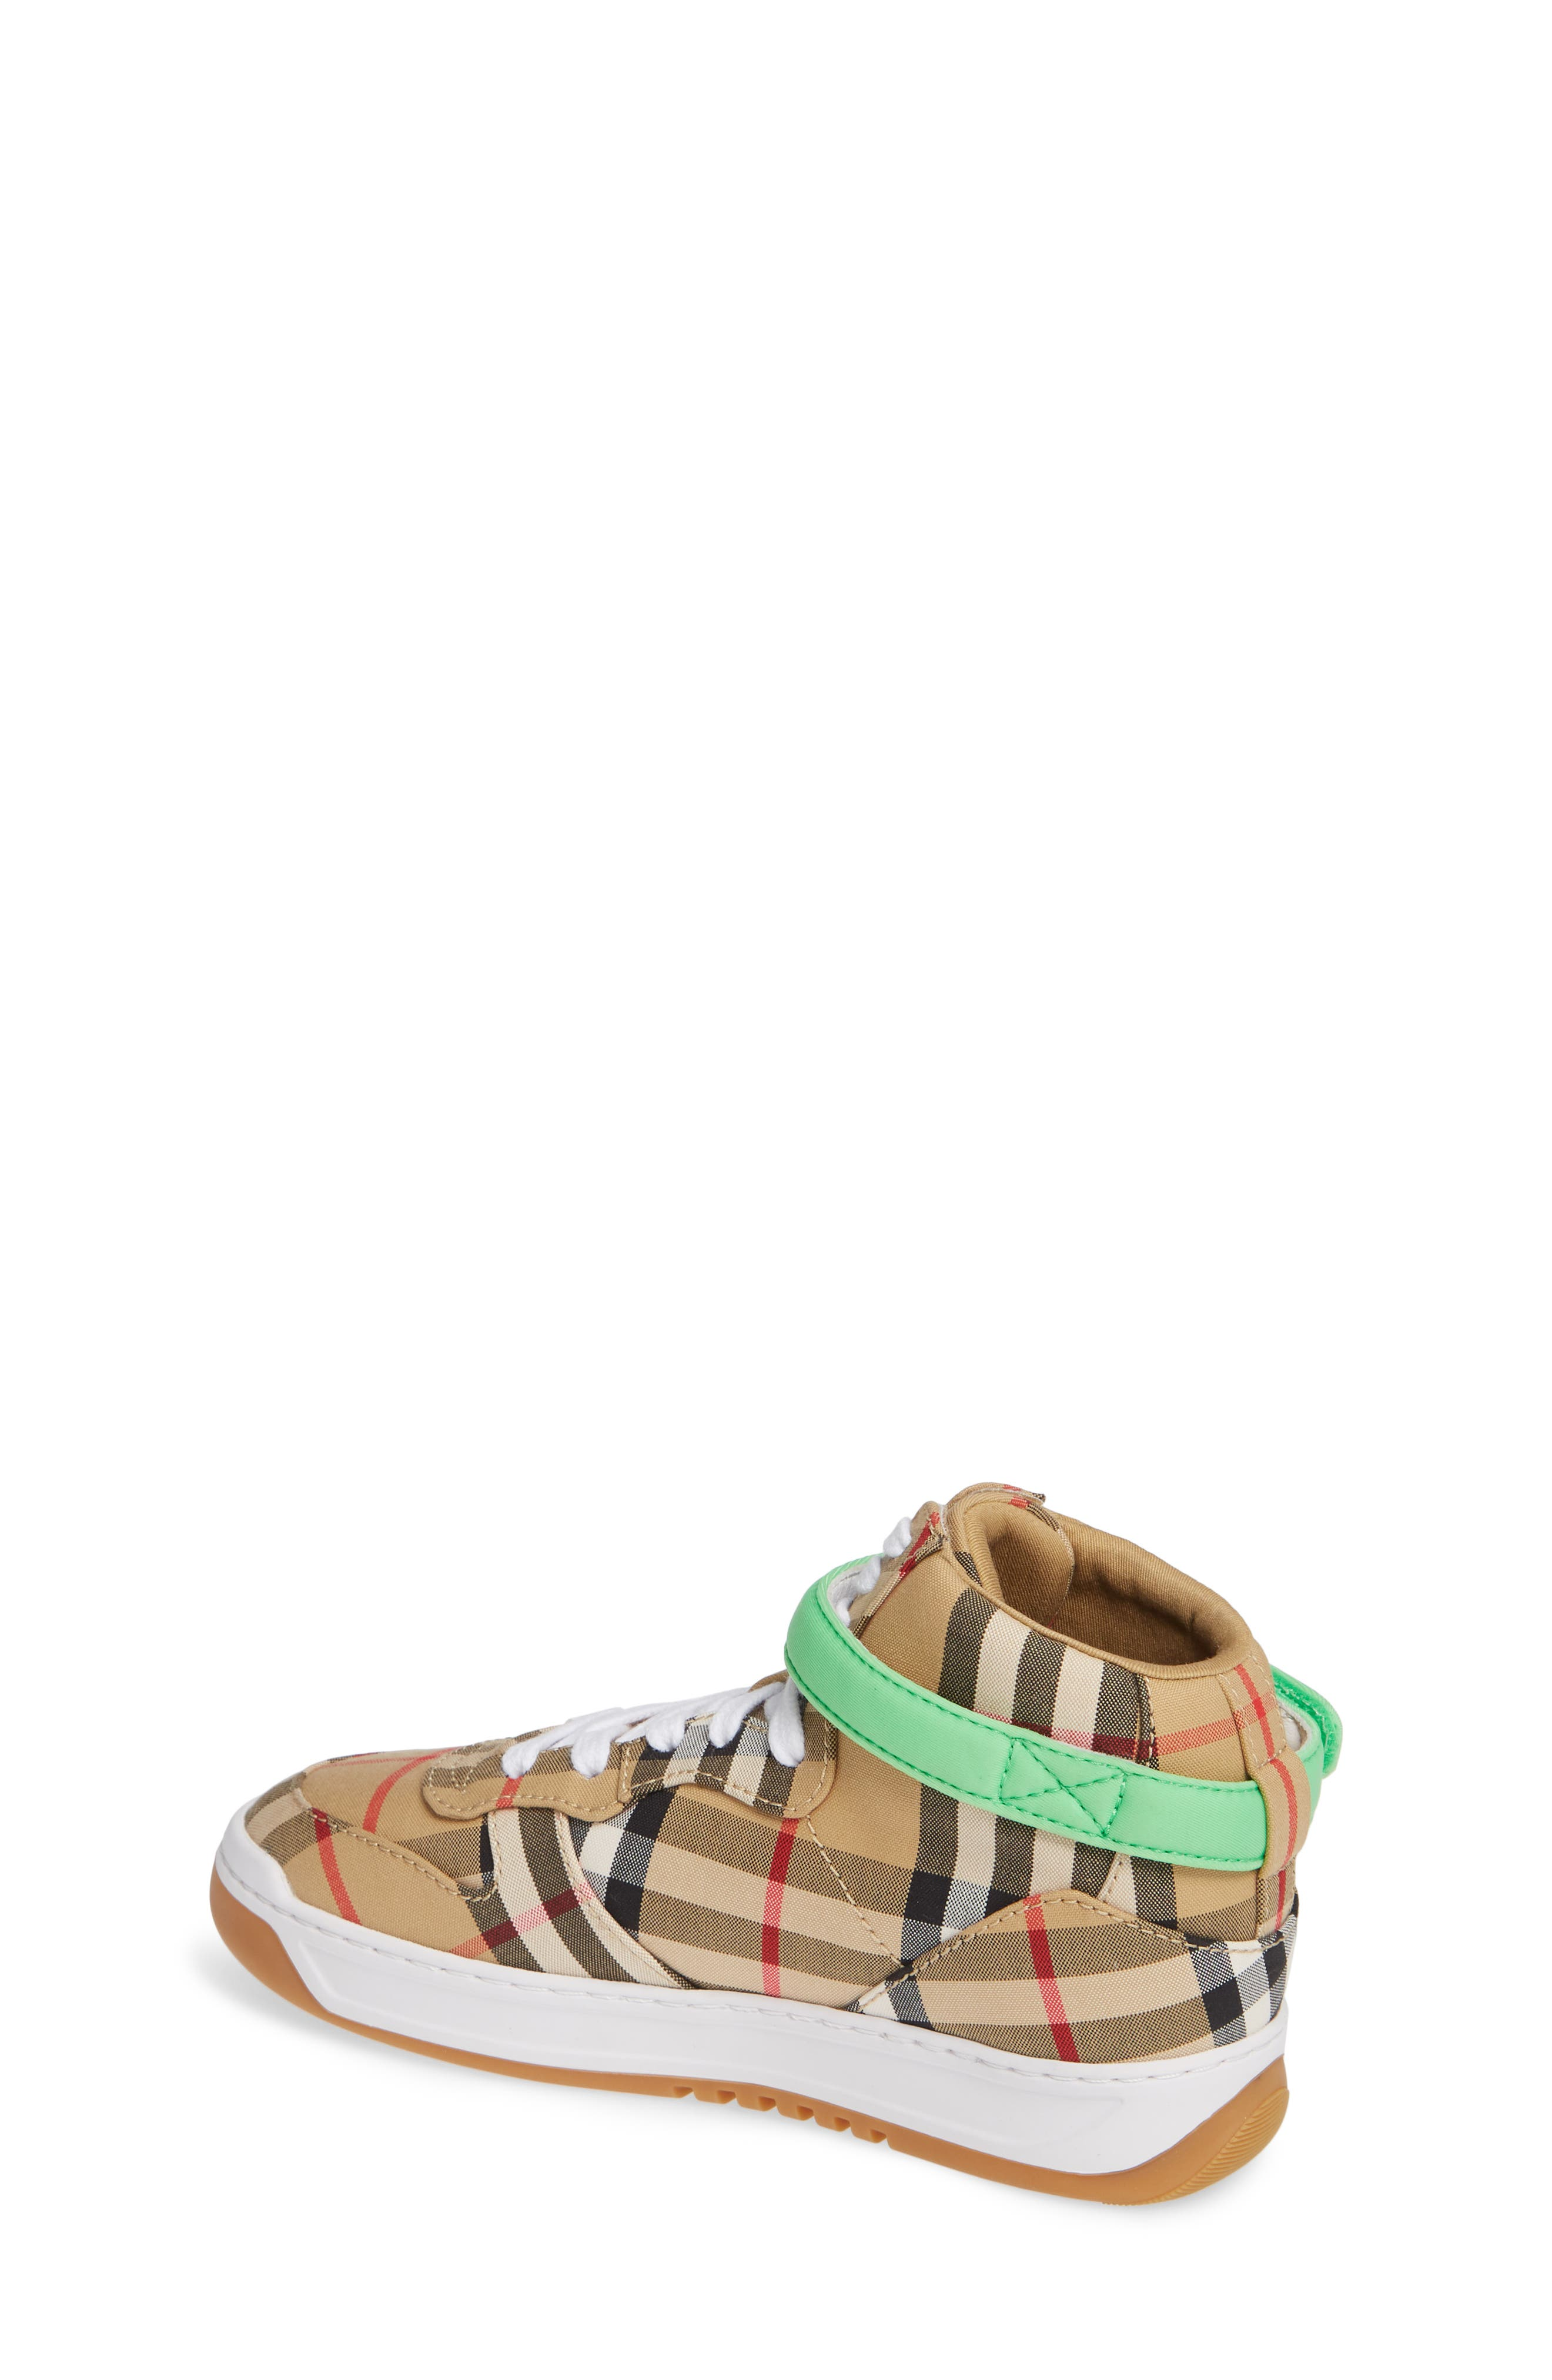 BURBERRY, Groves High Top Sneaker, Alternate thumbnail 2, color, NEON GREEN